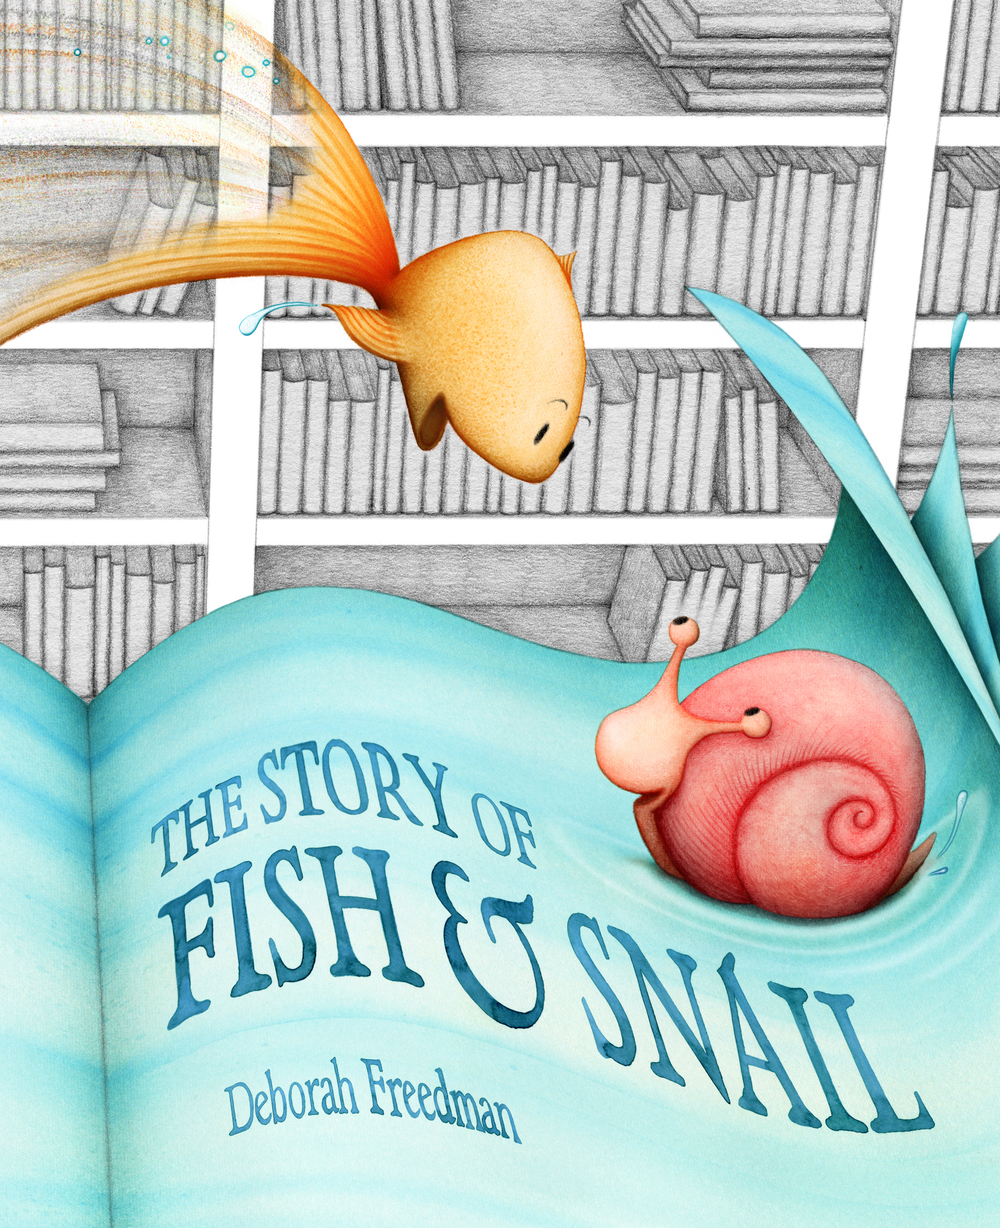 THE STORY OF FISH & SNAIL, Viking 2013